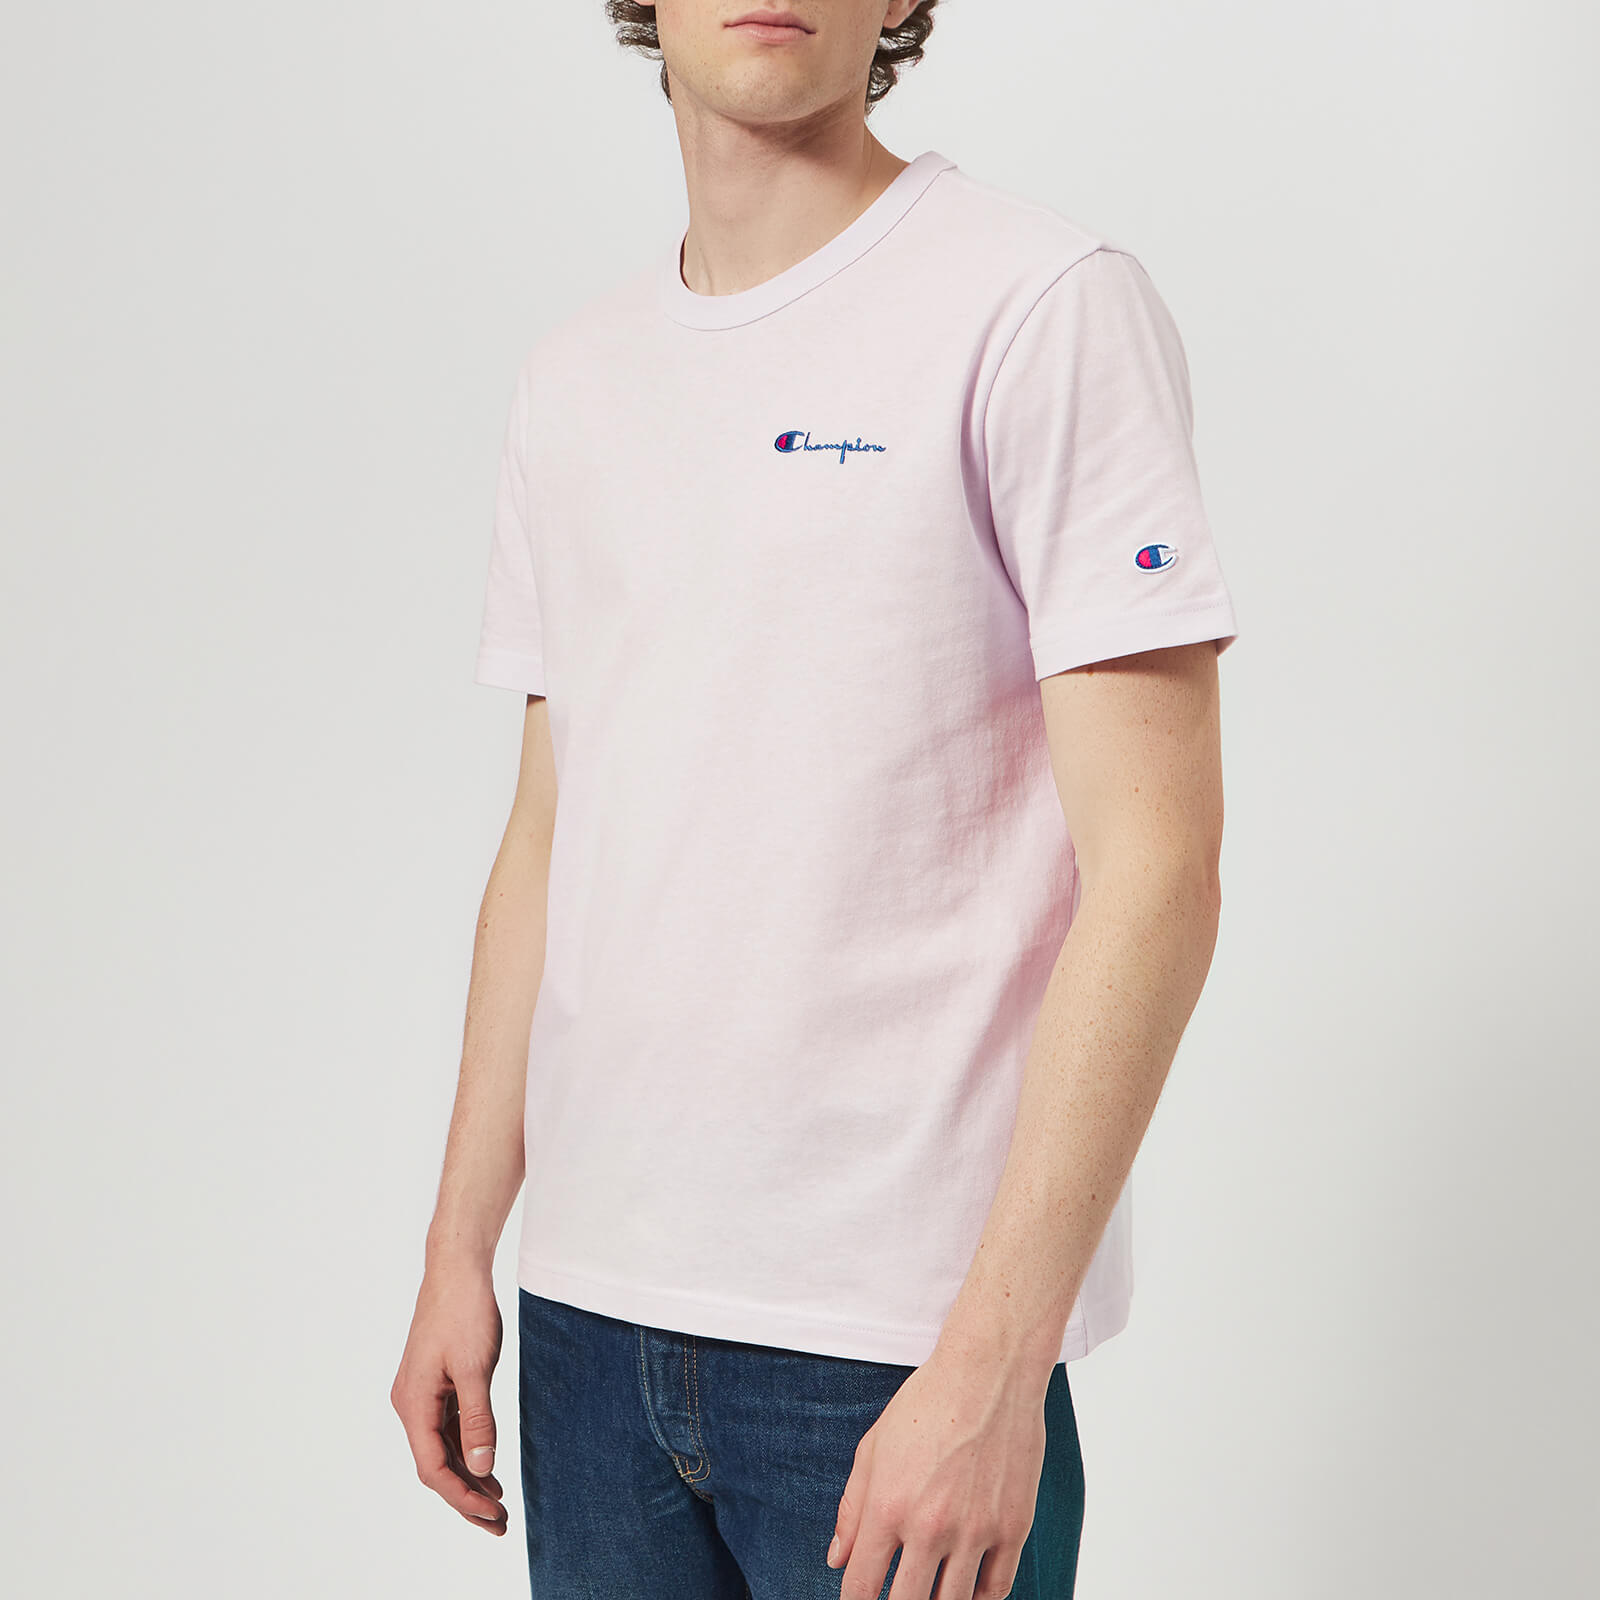 a3425923 Champion Men's Short Sleeve T-Shirt - Lavender - Free UK Delivery over £50